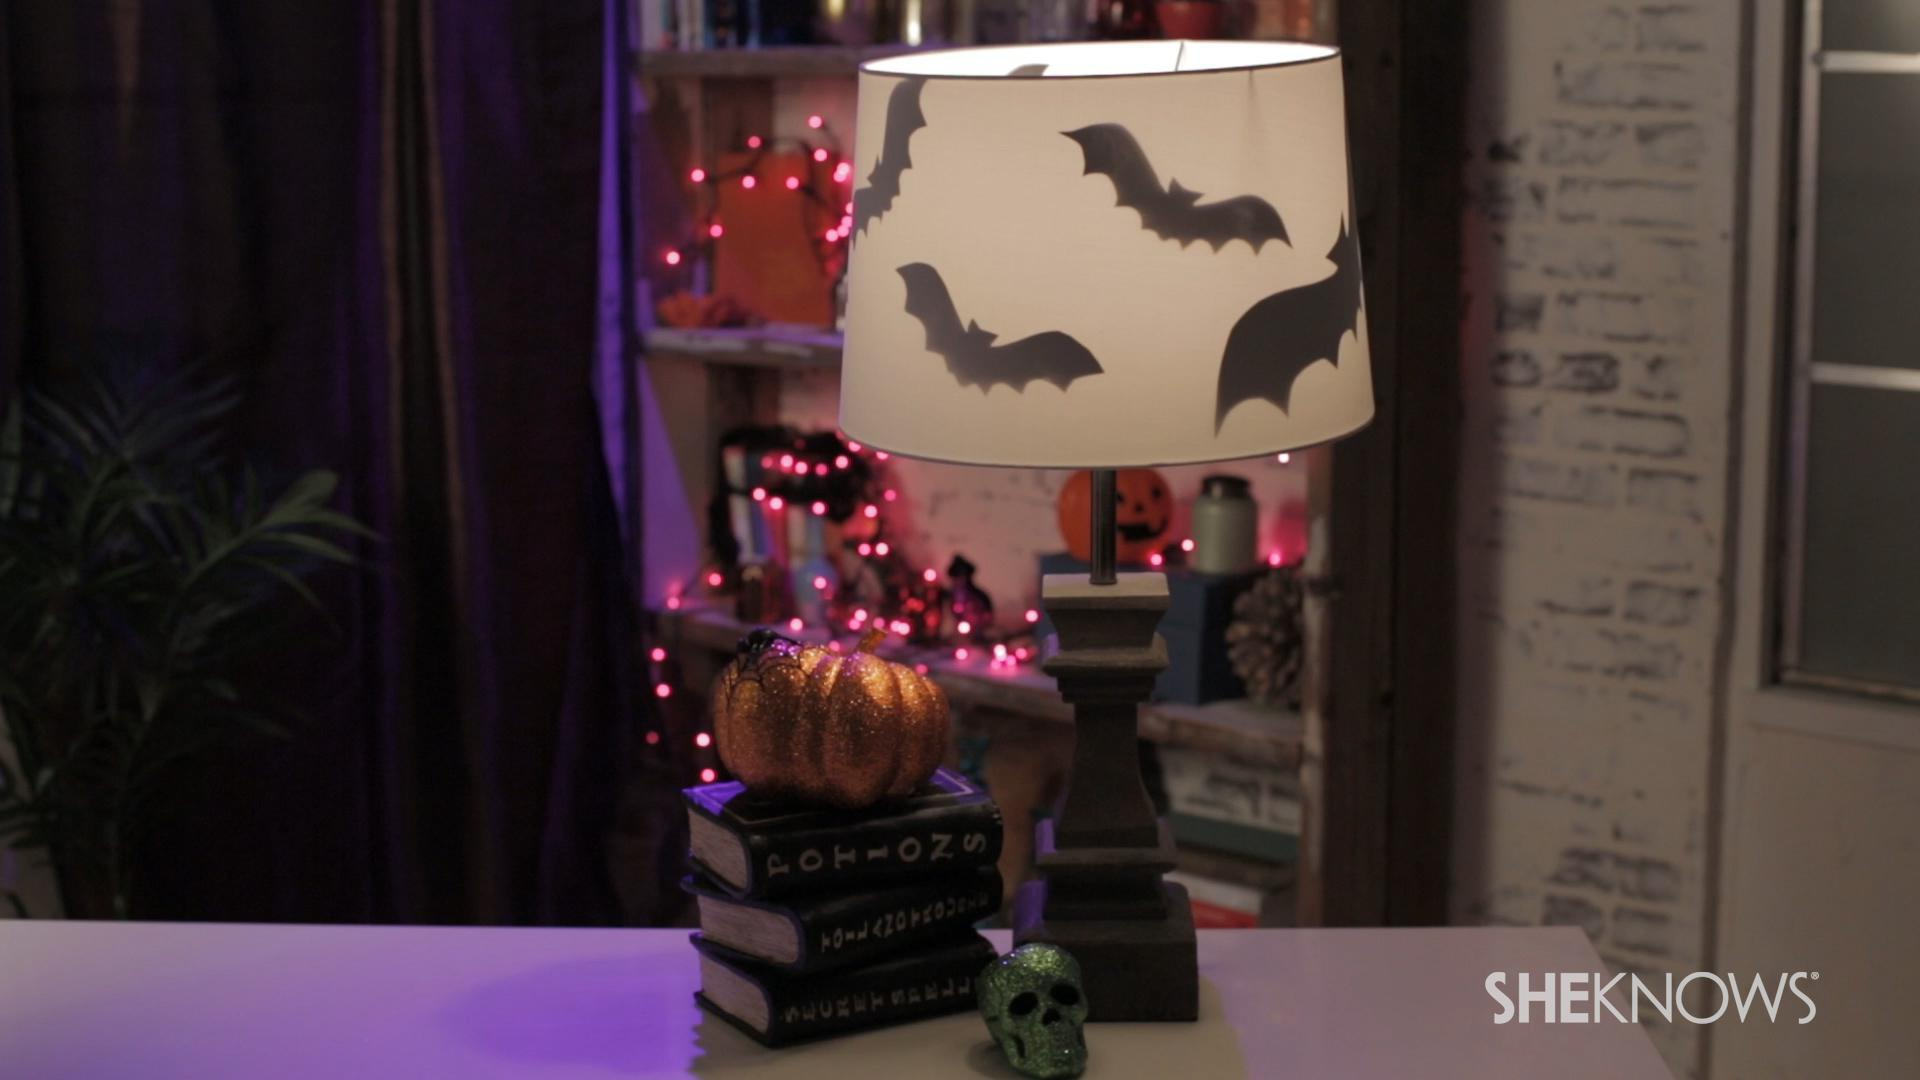 Cast a spell on your lamp with our bat silhouette DIY (VIDEO)